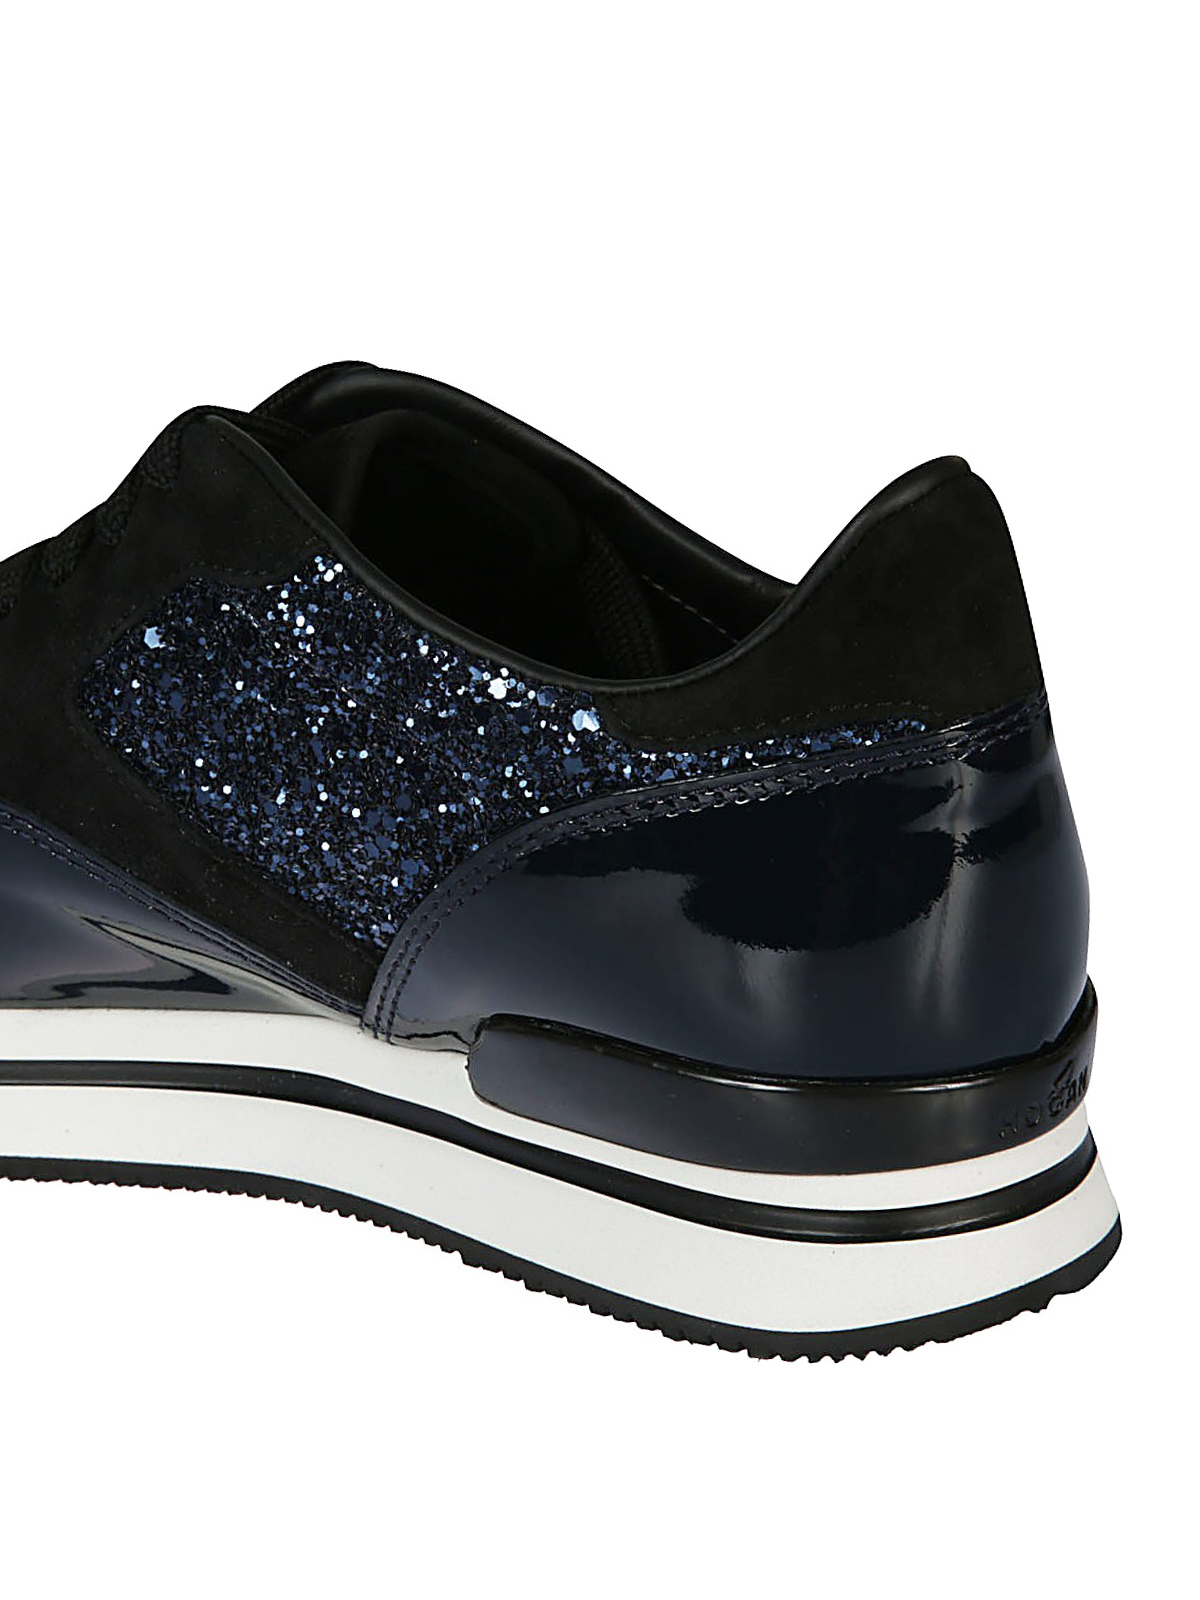 Trainers Hogan - H222 blue patent and glitter sneakers ...